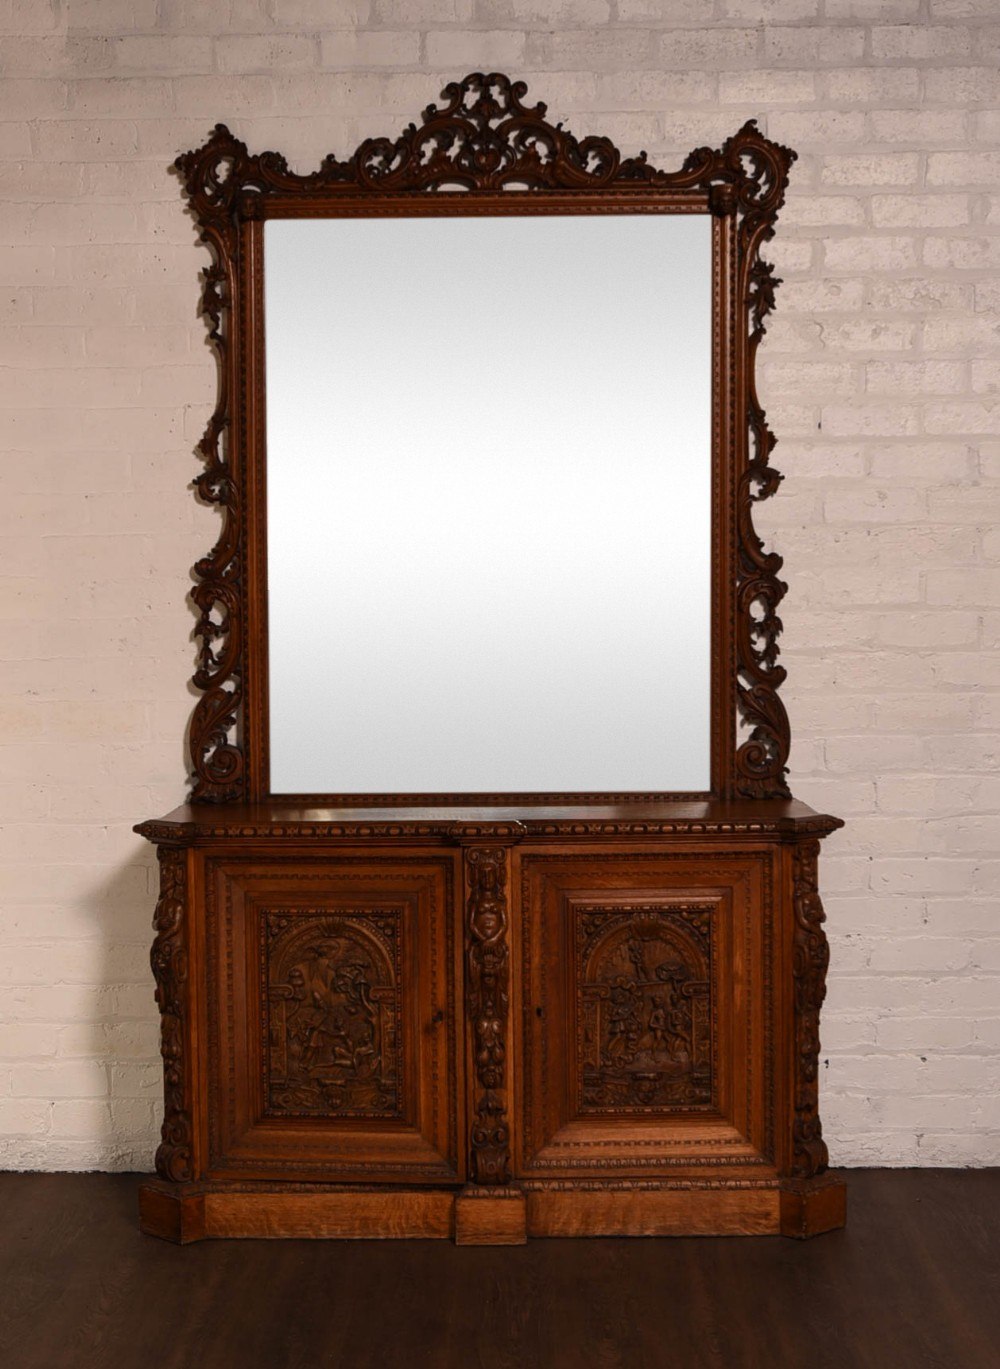 Impressive Carved Oak Console Cabinet With Mirror | 505537 ...